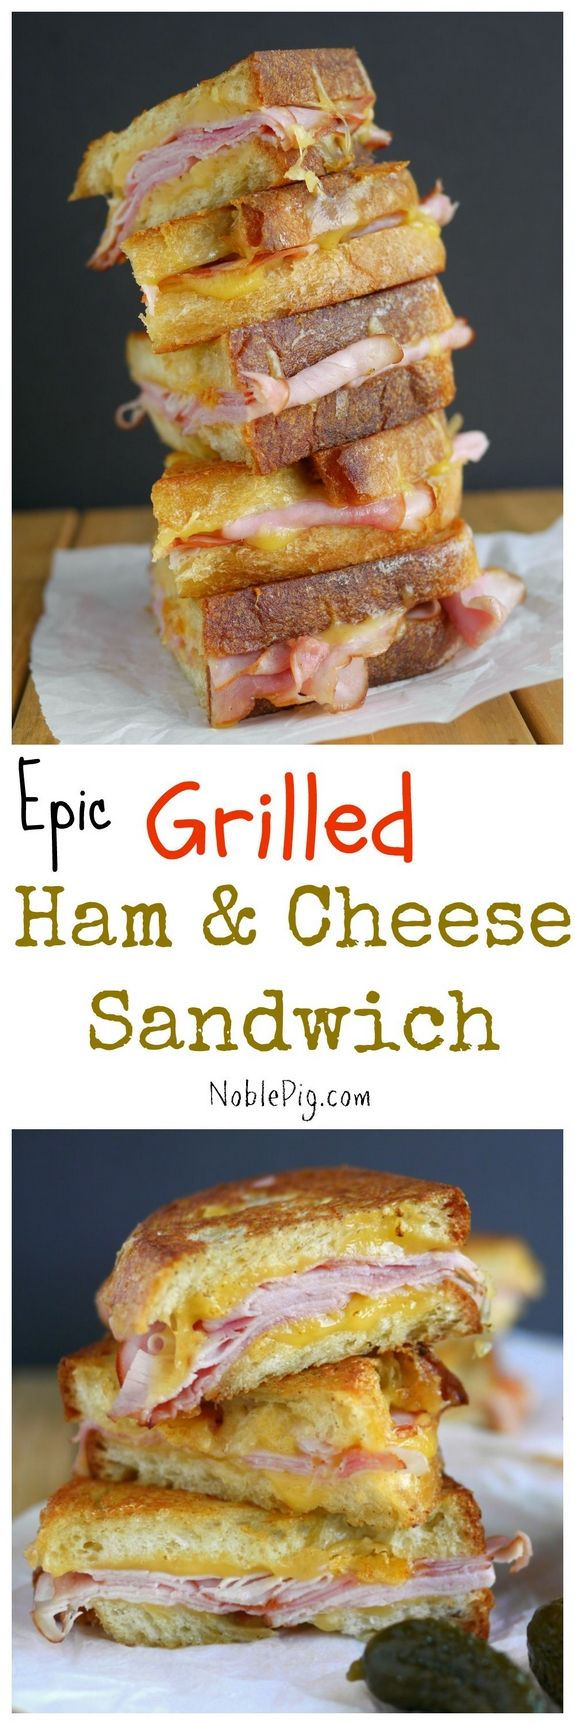 Epic Grilled Ham and Cheese Sandwich from NoblePig.com. When you use the best ingredients, you only have to use a few.